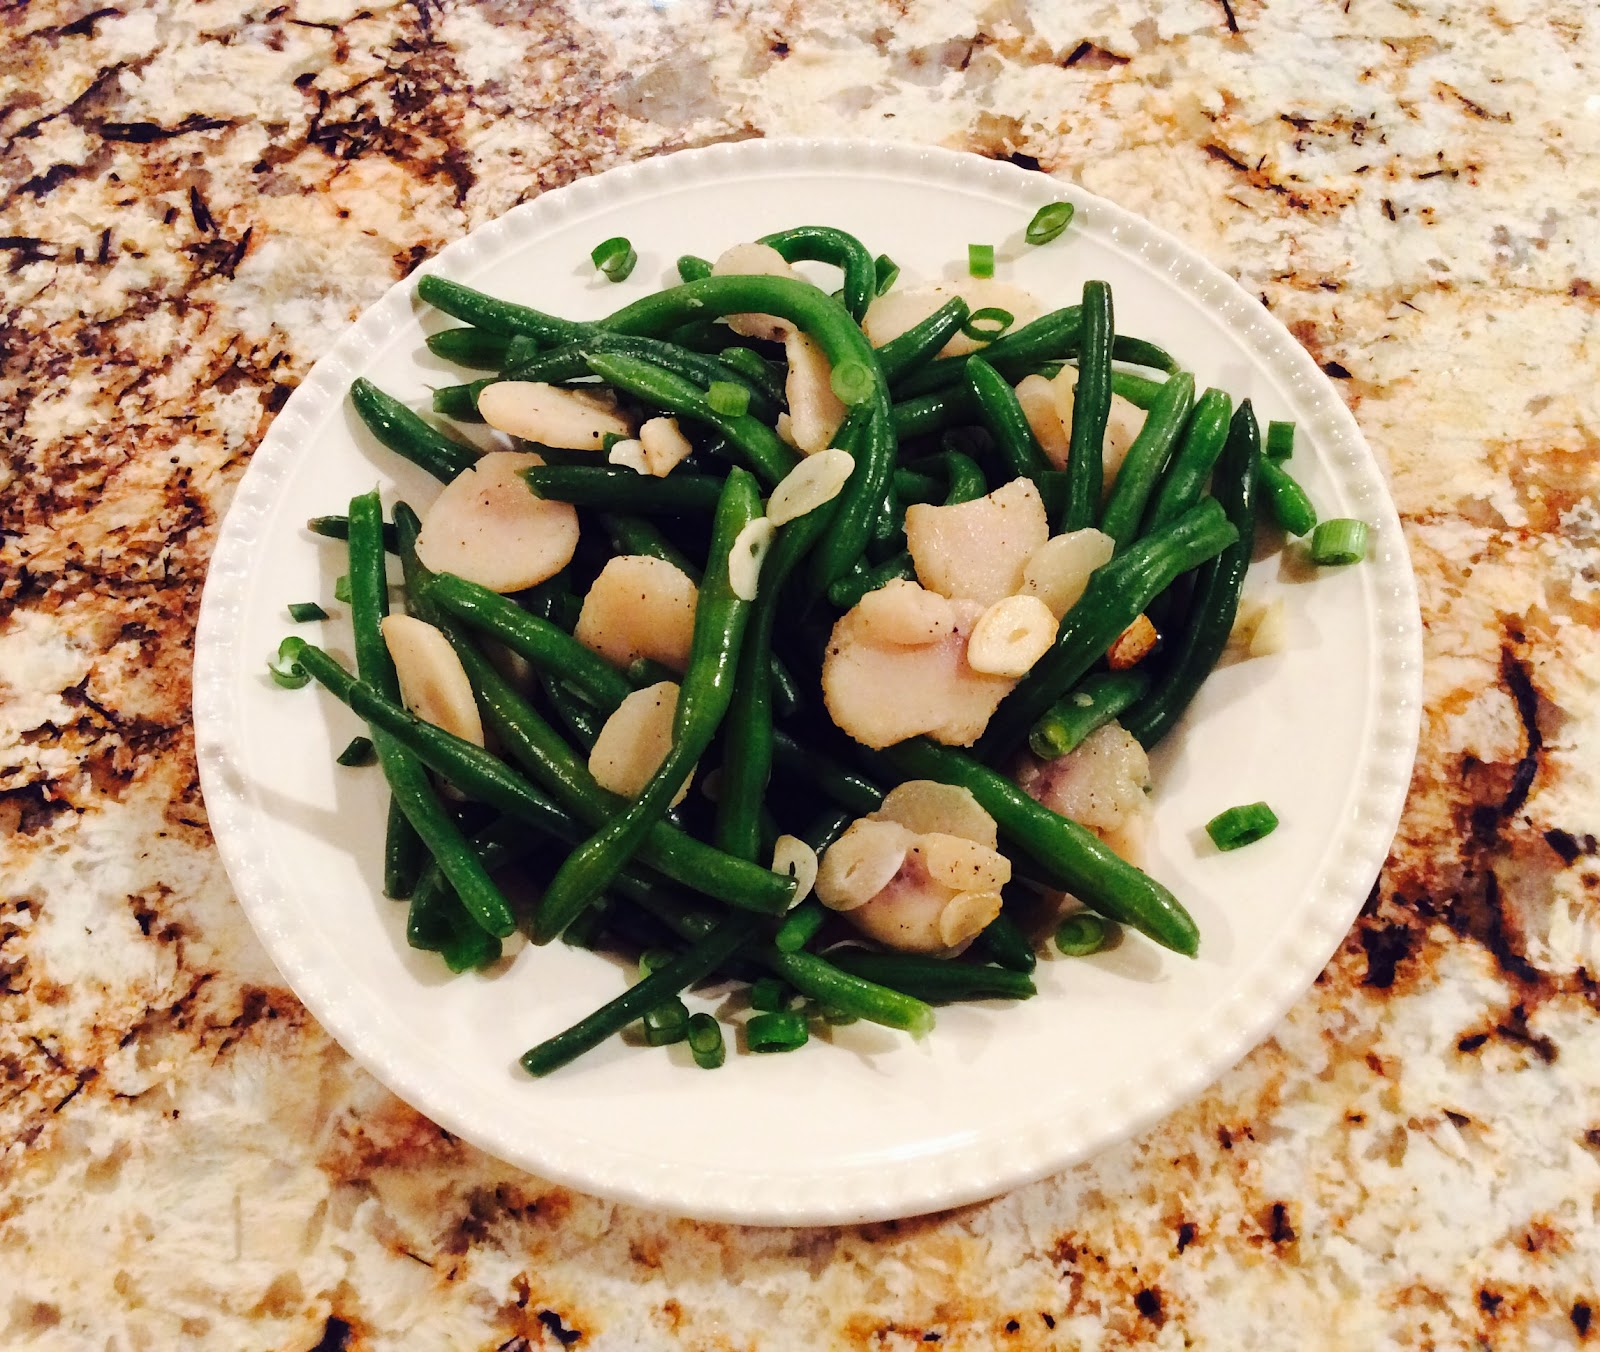 Sauteed Green Beans with Water Chestnuts and Sliced Garlic